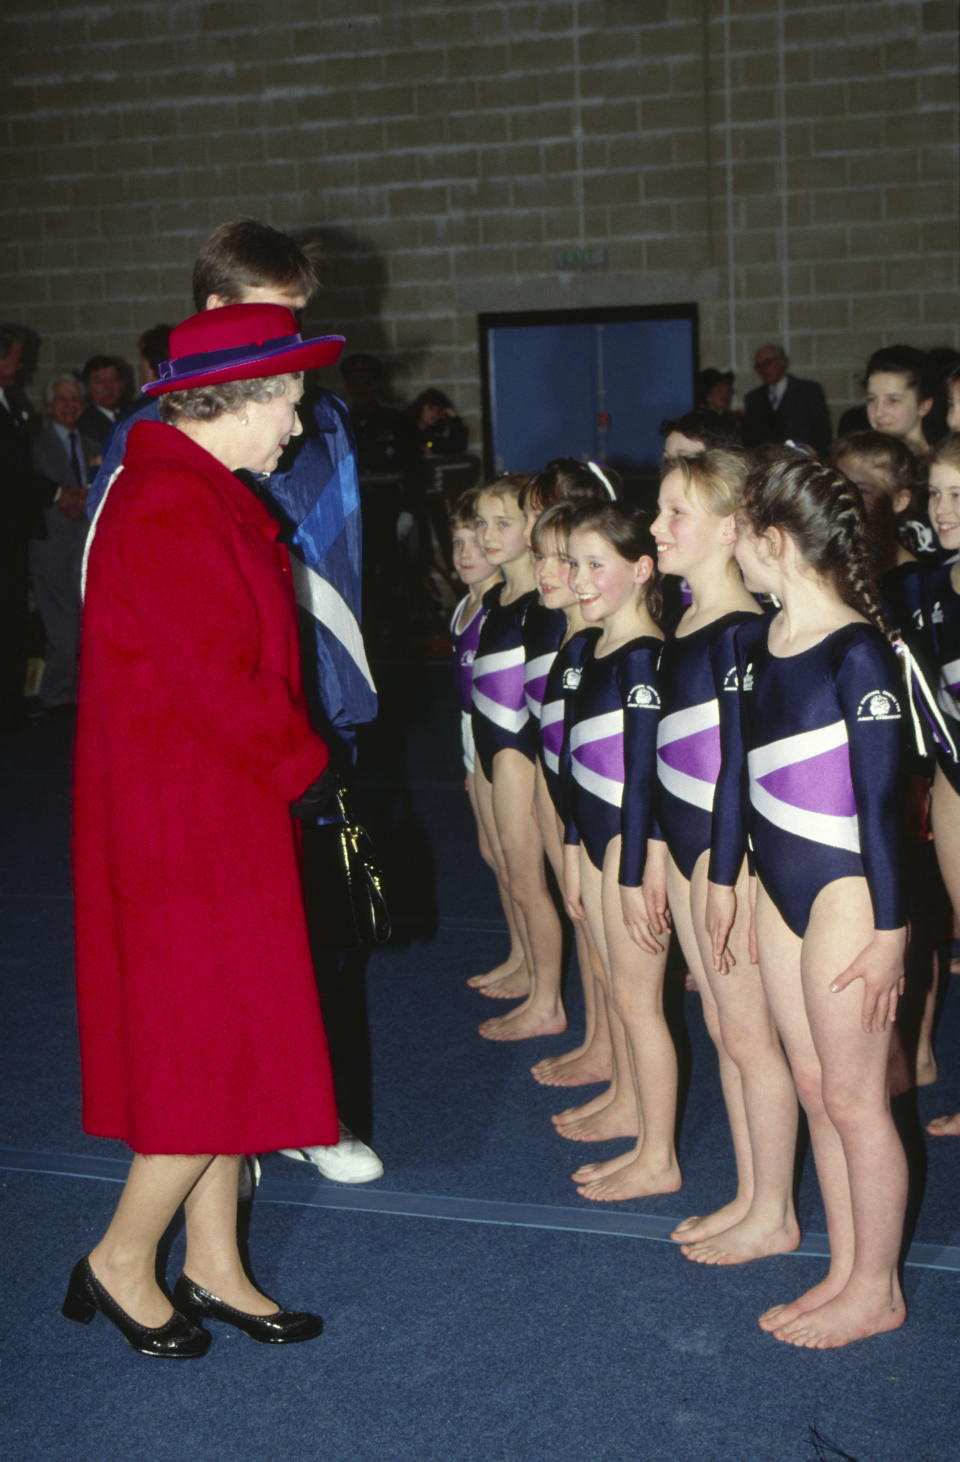 PORT REGIS, UNITED KINGDOM - FEBRUARY 23:  The Queen Visiting Port Regis School Where Their Grandchildren Zara And Peter Phillips Are Pupils. The Queen Is Talking To Zara Who Is Doing A Gymnastics Display.  (Photo by Tim Graham Photo Library via Getty Images)